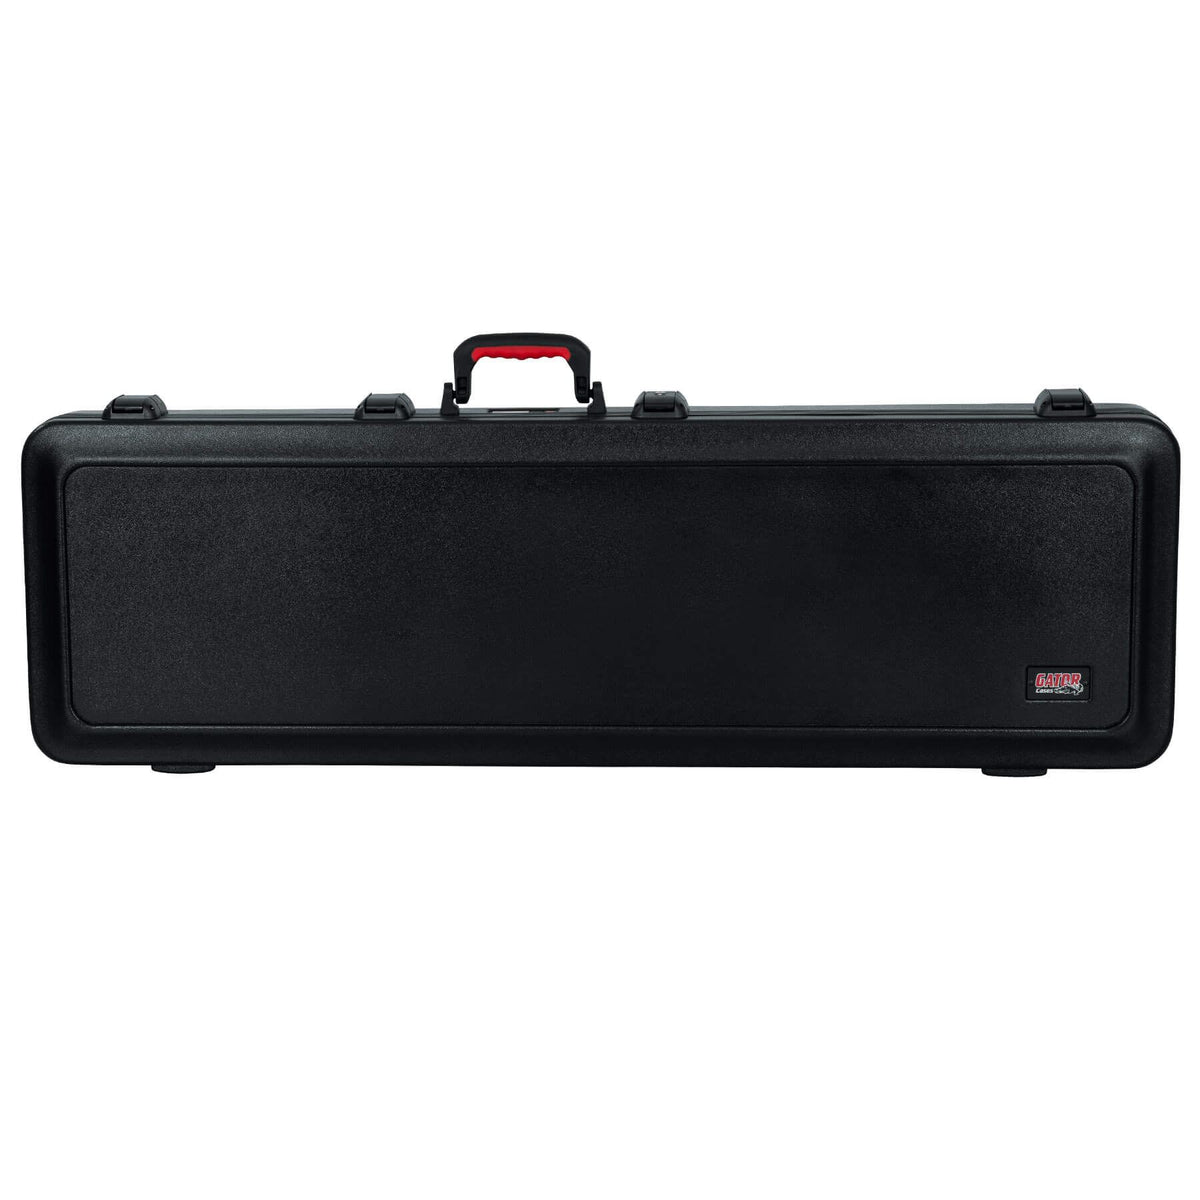 Gator ATA Bass Guitar Case fits Fender Standard Jazz Bass Fretless